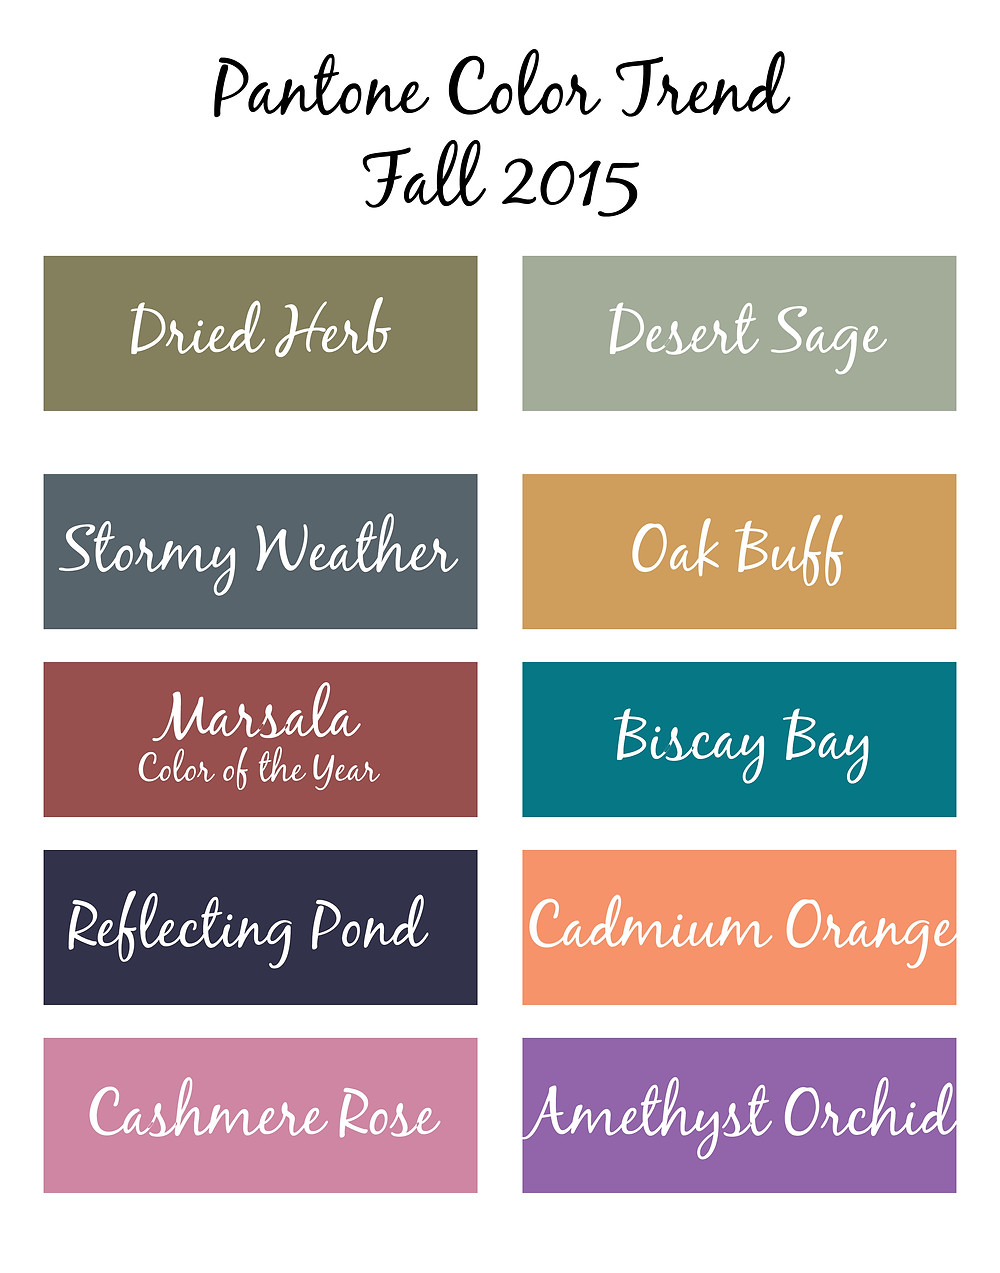 Pantone Color Trends Fall 2015.jpg